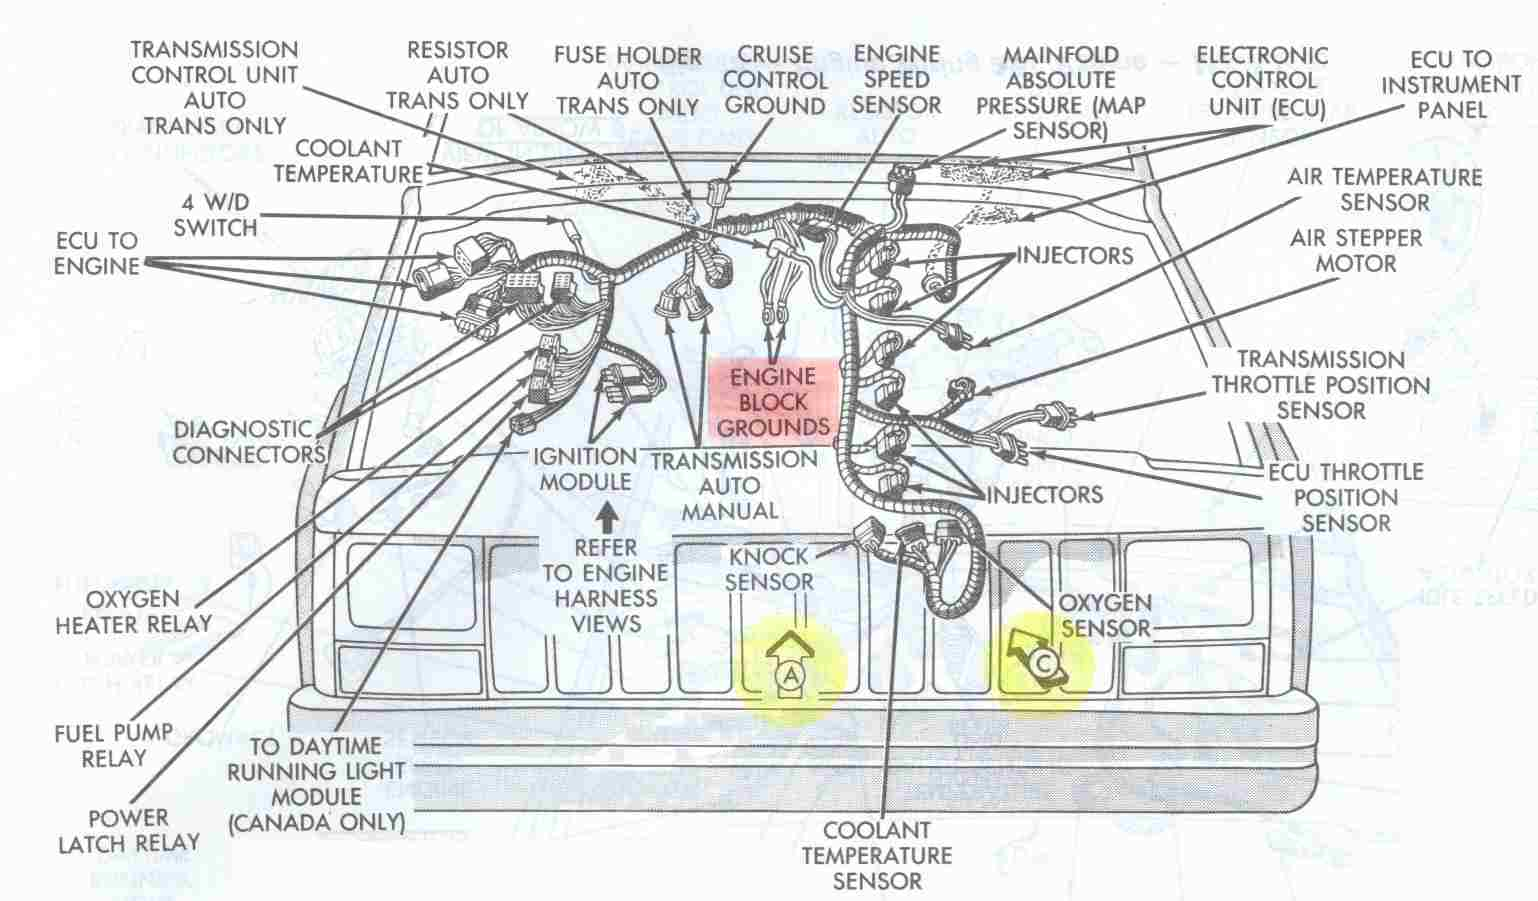 Electrical_Engine_Ground_Points_Overview jeep cherokee electrical diagnosing erratic behavior of engine 2002 jeep grand cherokee wiring harness at sewacar.co